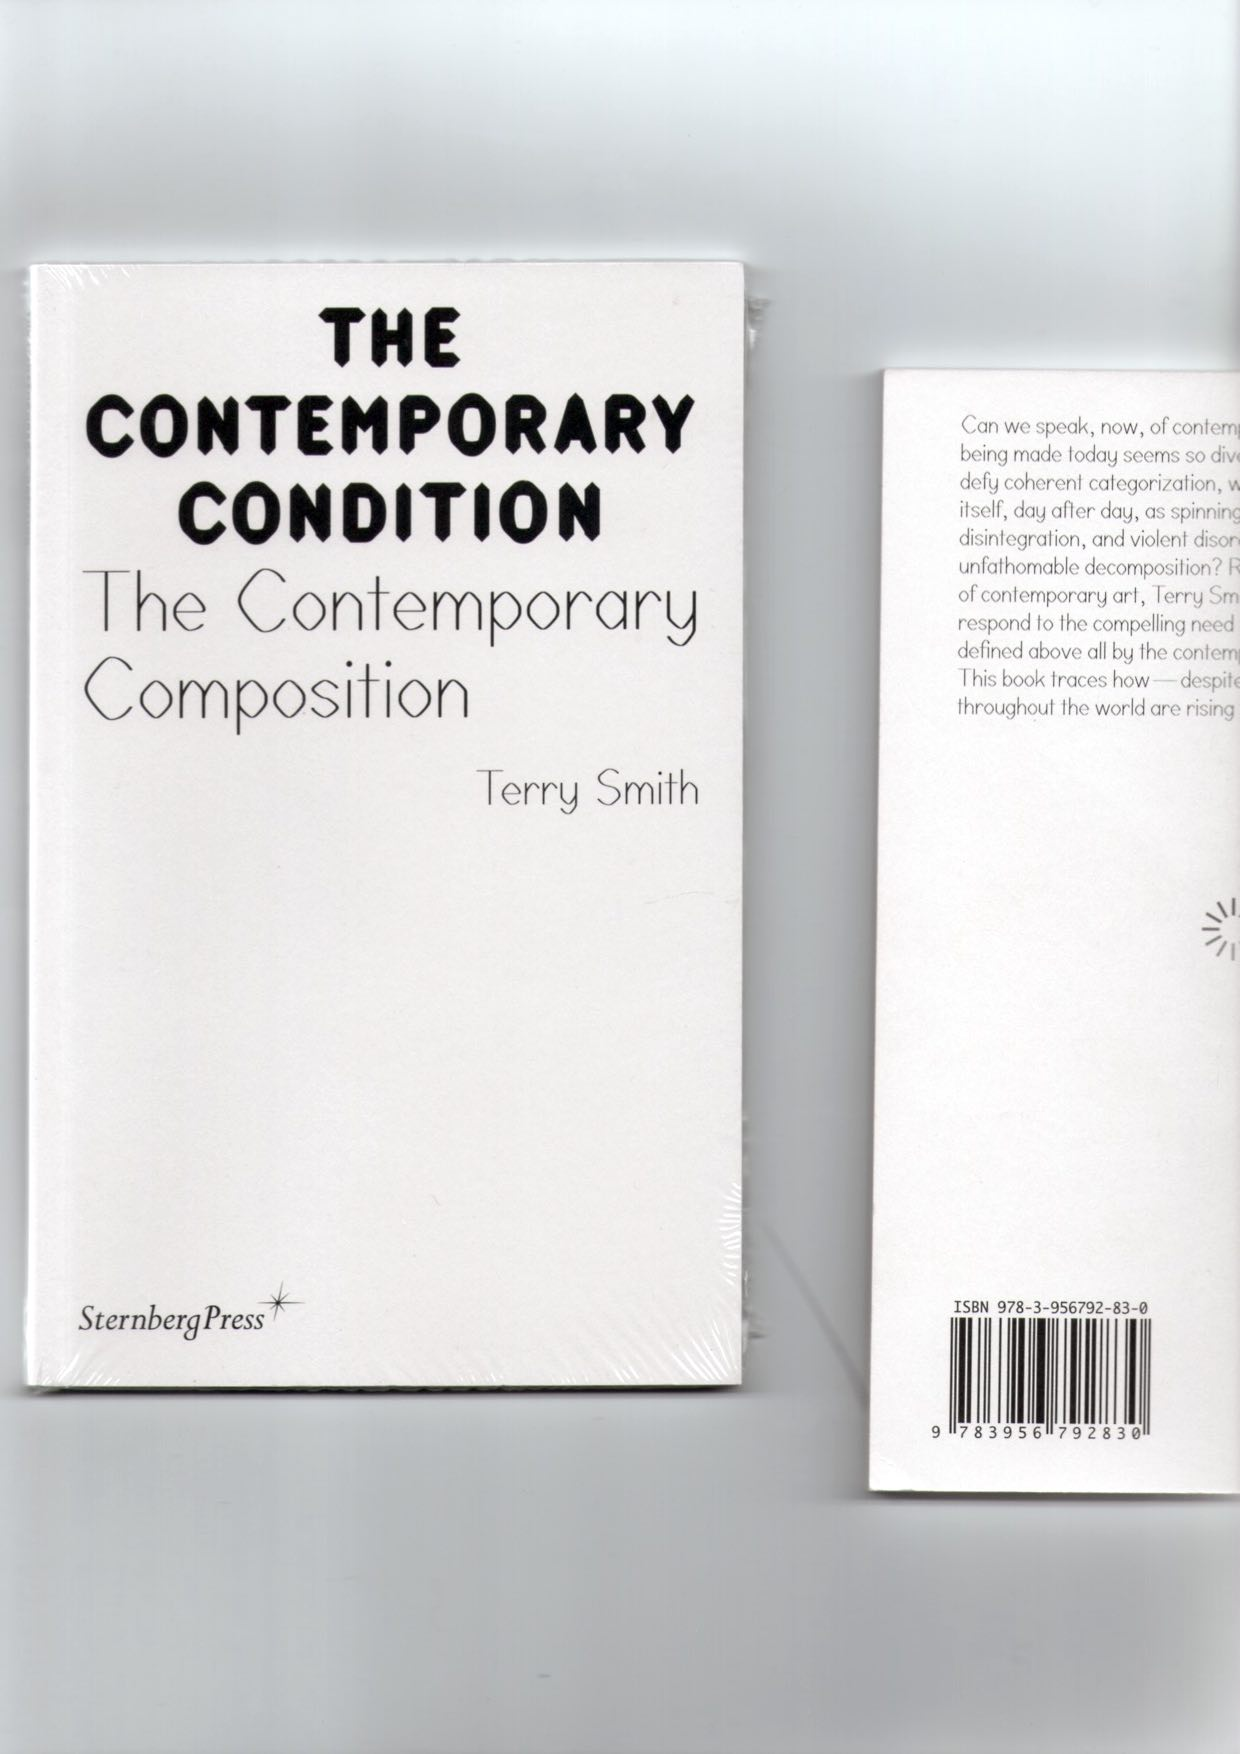 SMITH, Terry - The Contemporary Condition. The Contemporary Composition